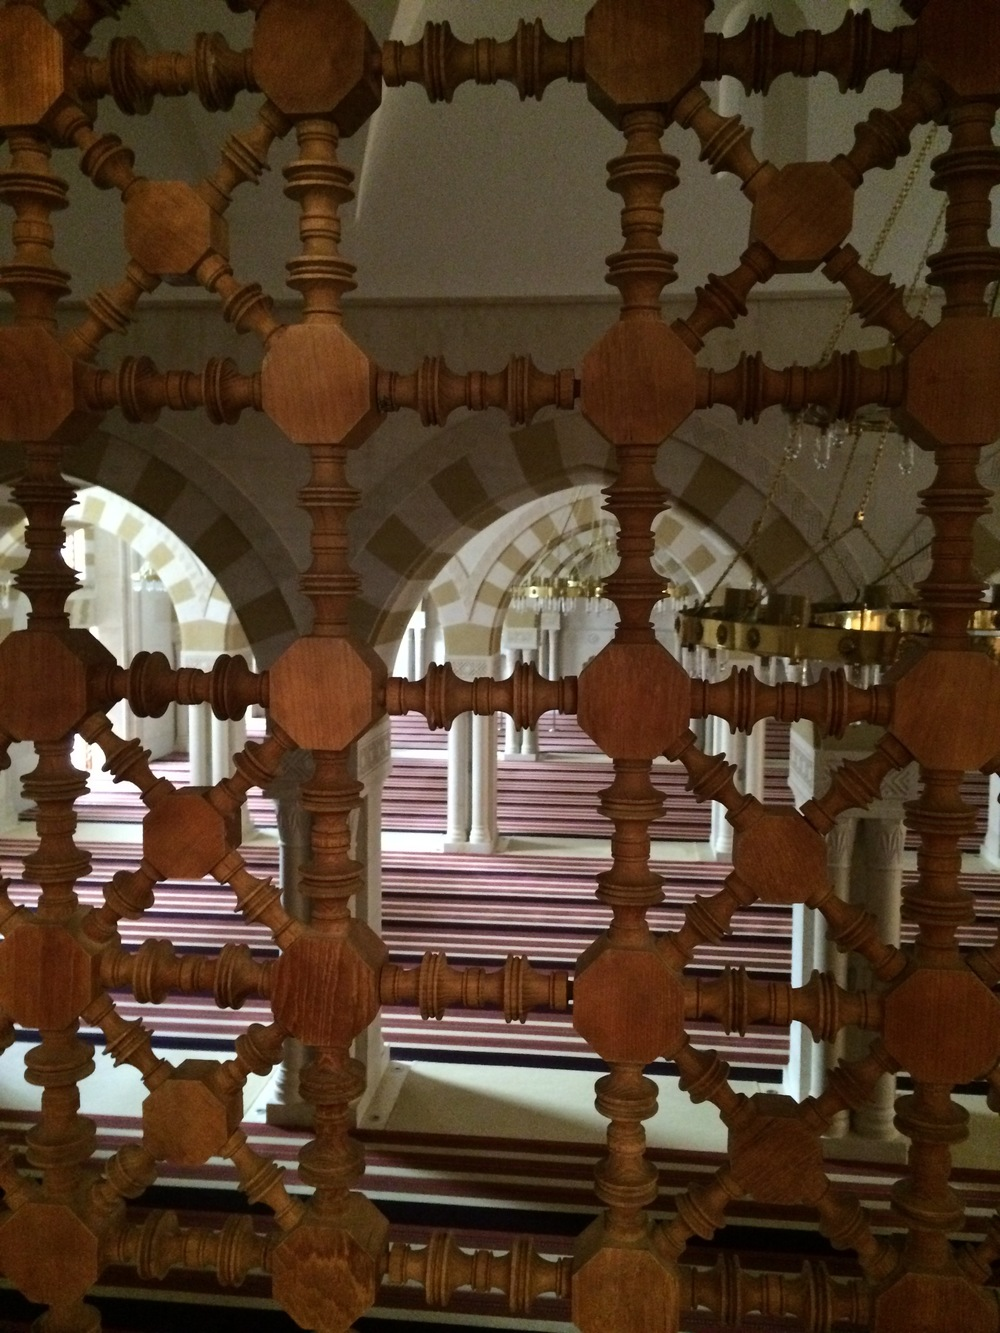 The view into the larger section of the mosque from the women's section.